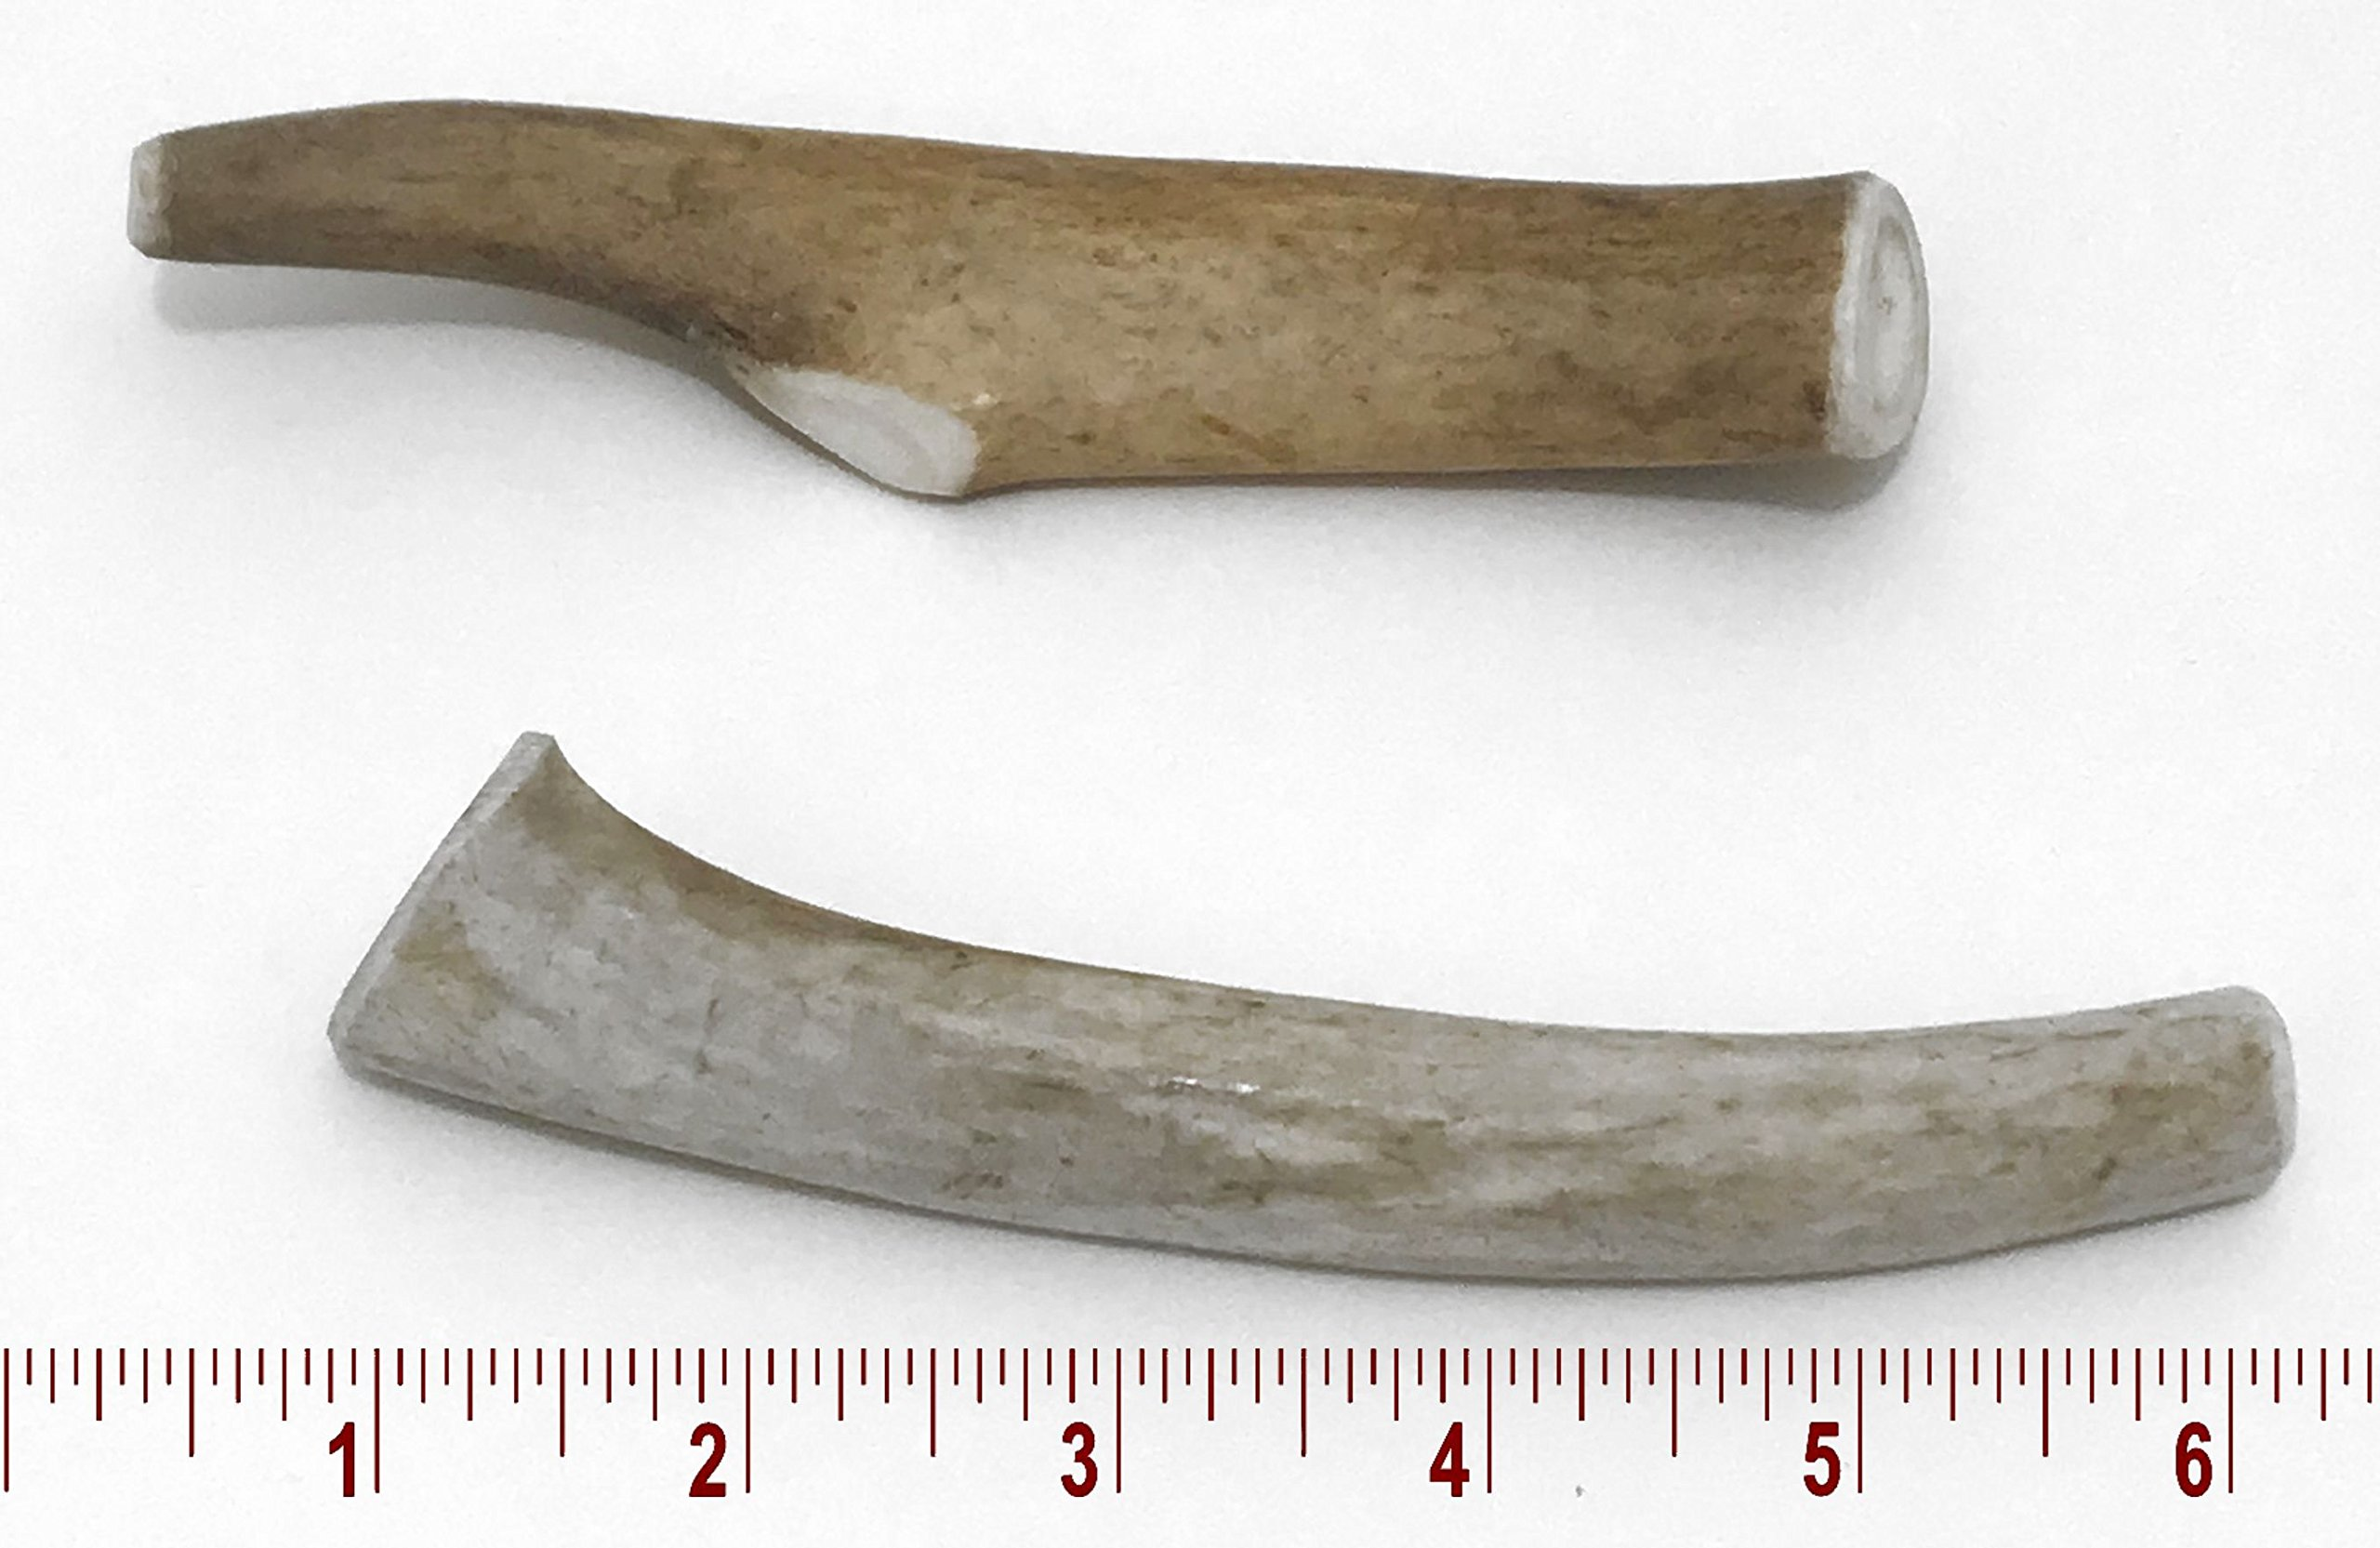 5-7'' Medium Deer Antler Dog Chew - 2 ct by Perfect Pet Chews (Image #1)